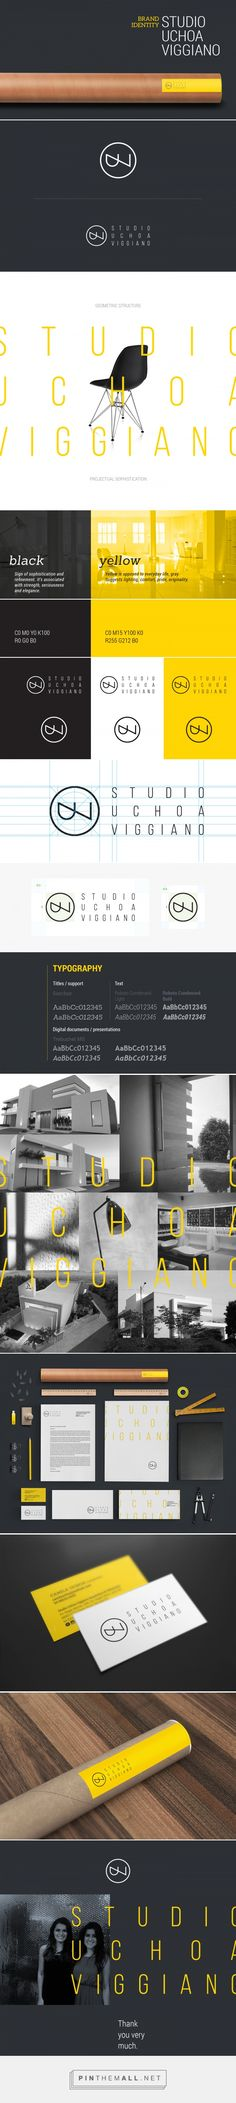 Studio Uchoa Viggiano on Behance... - a grouped images picture - Pin Them All